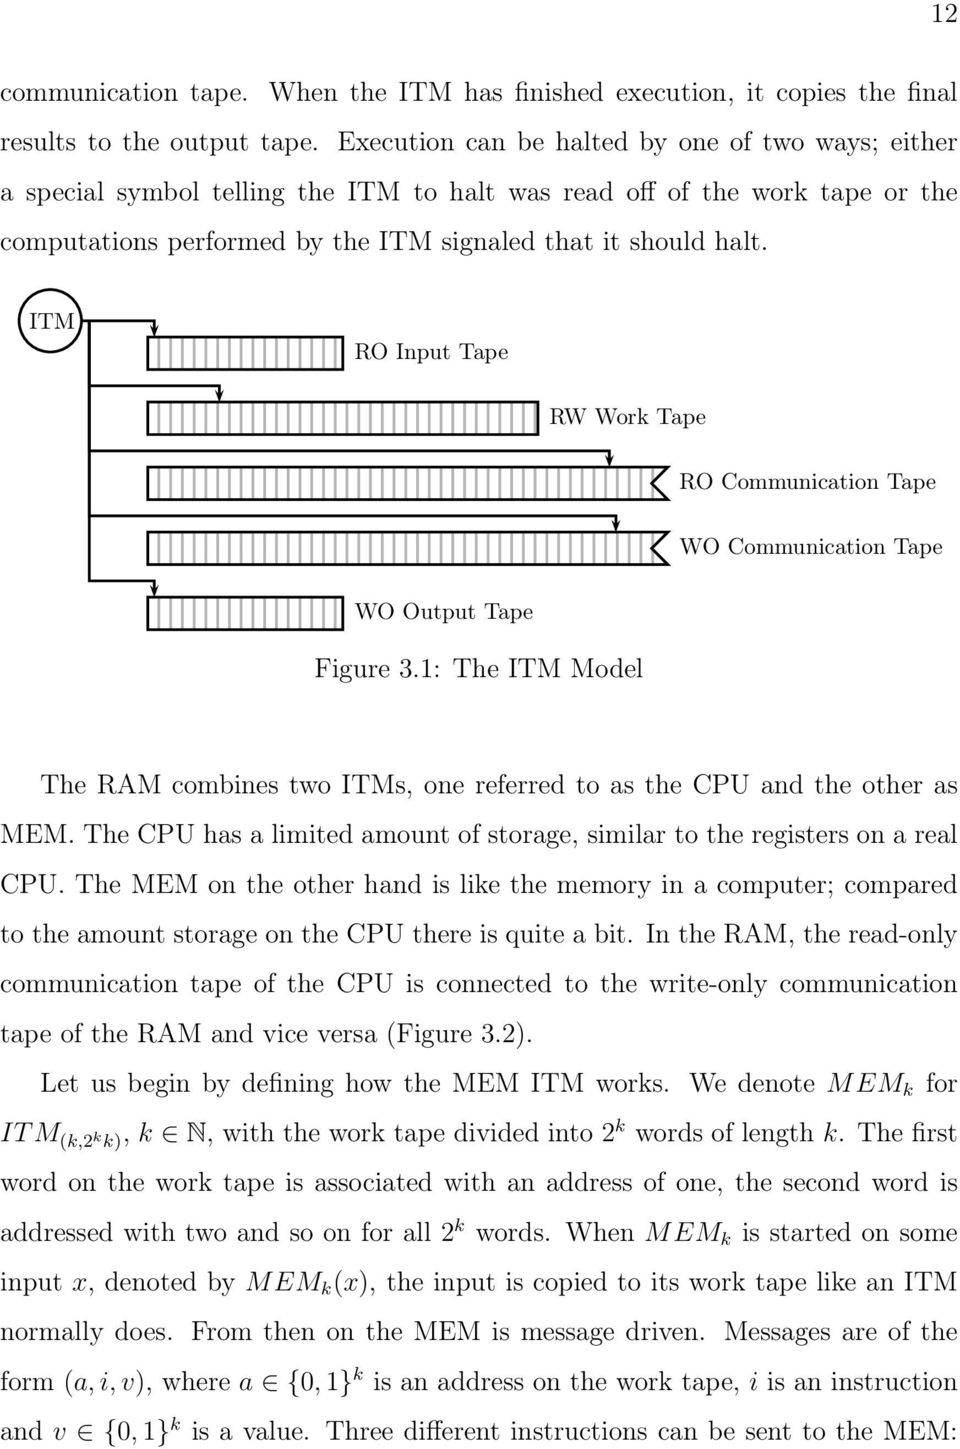 ITM RO Input Tape RW Work Tape RO Communication Tape WO Communication Tape WO Output Tape Figure 3.1: The ITM Model The RAM combines two ITMs, one referred to as the CPU and the other as MEM.